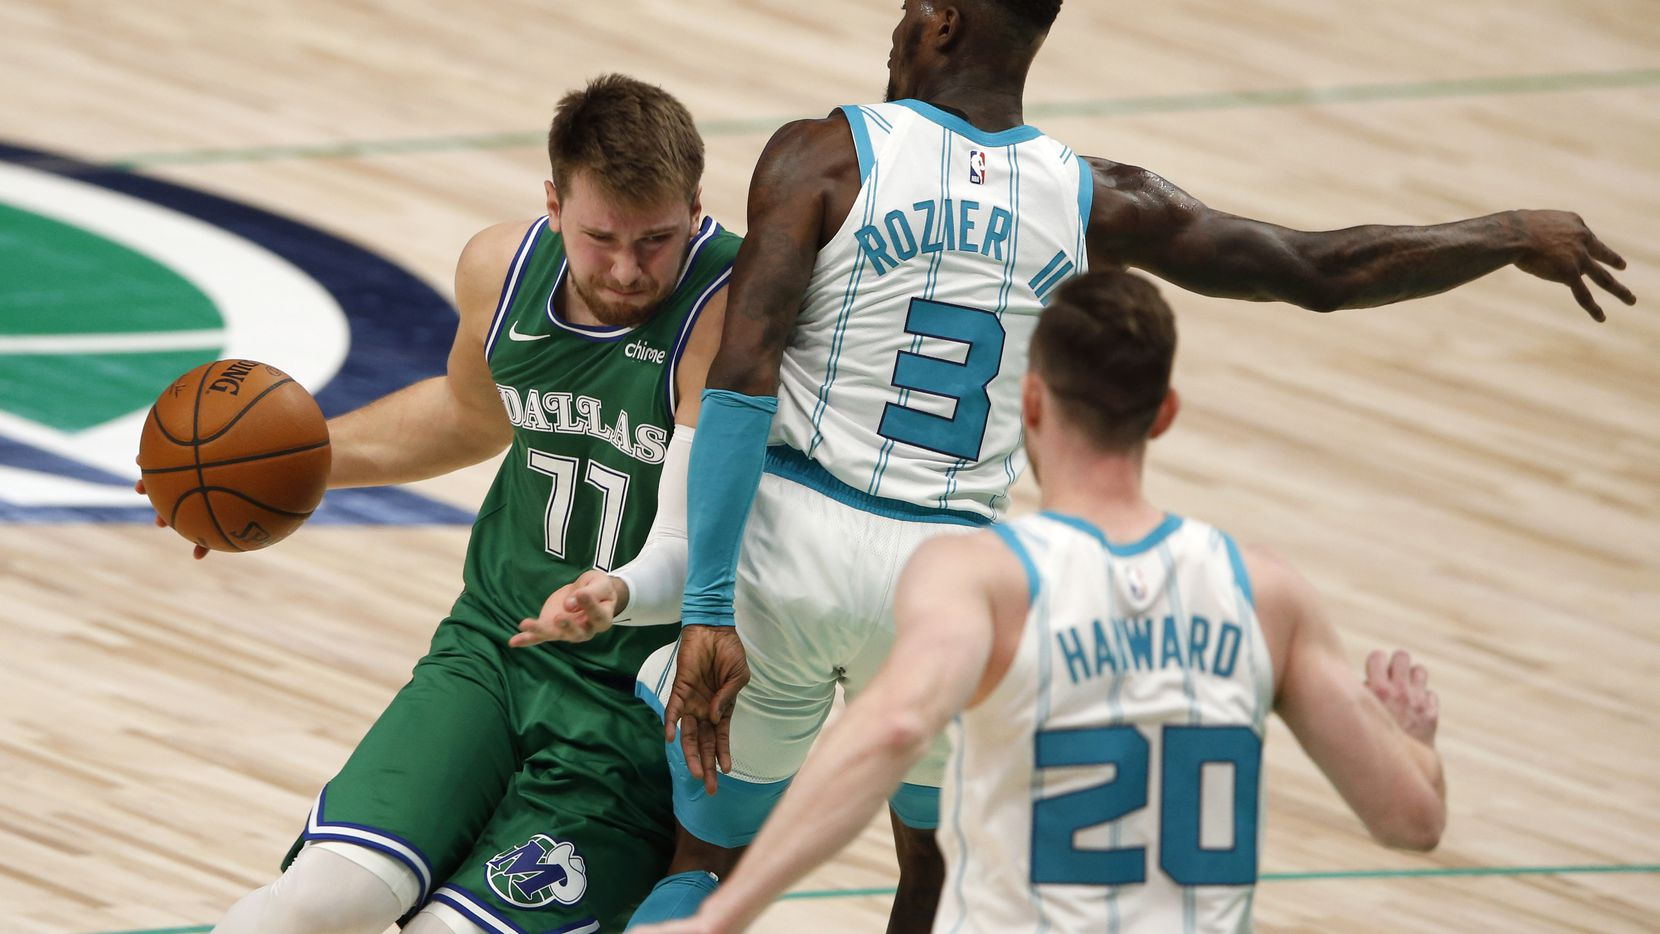 Mavericks guard Luka Doncic (77) tries to get around Hornets guard Terry Rozier (3) during the third quarter of a game at American Airlines Center on Wednesday, Dec. 30, 2020, in Dallas.